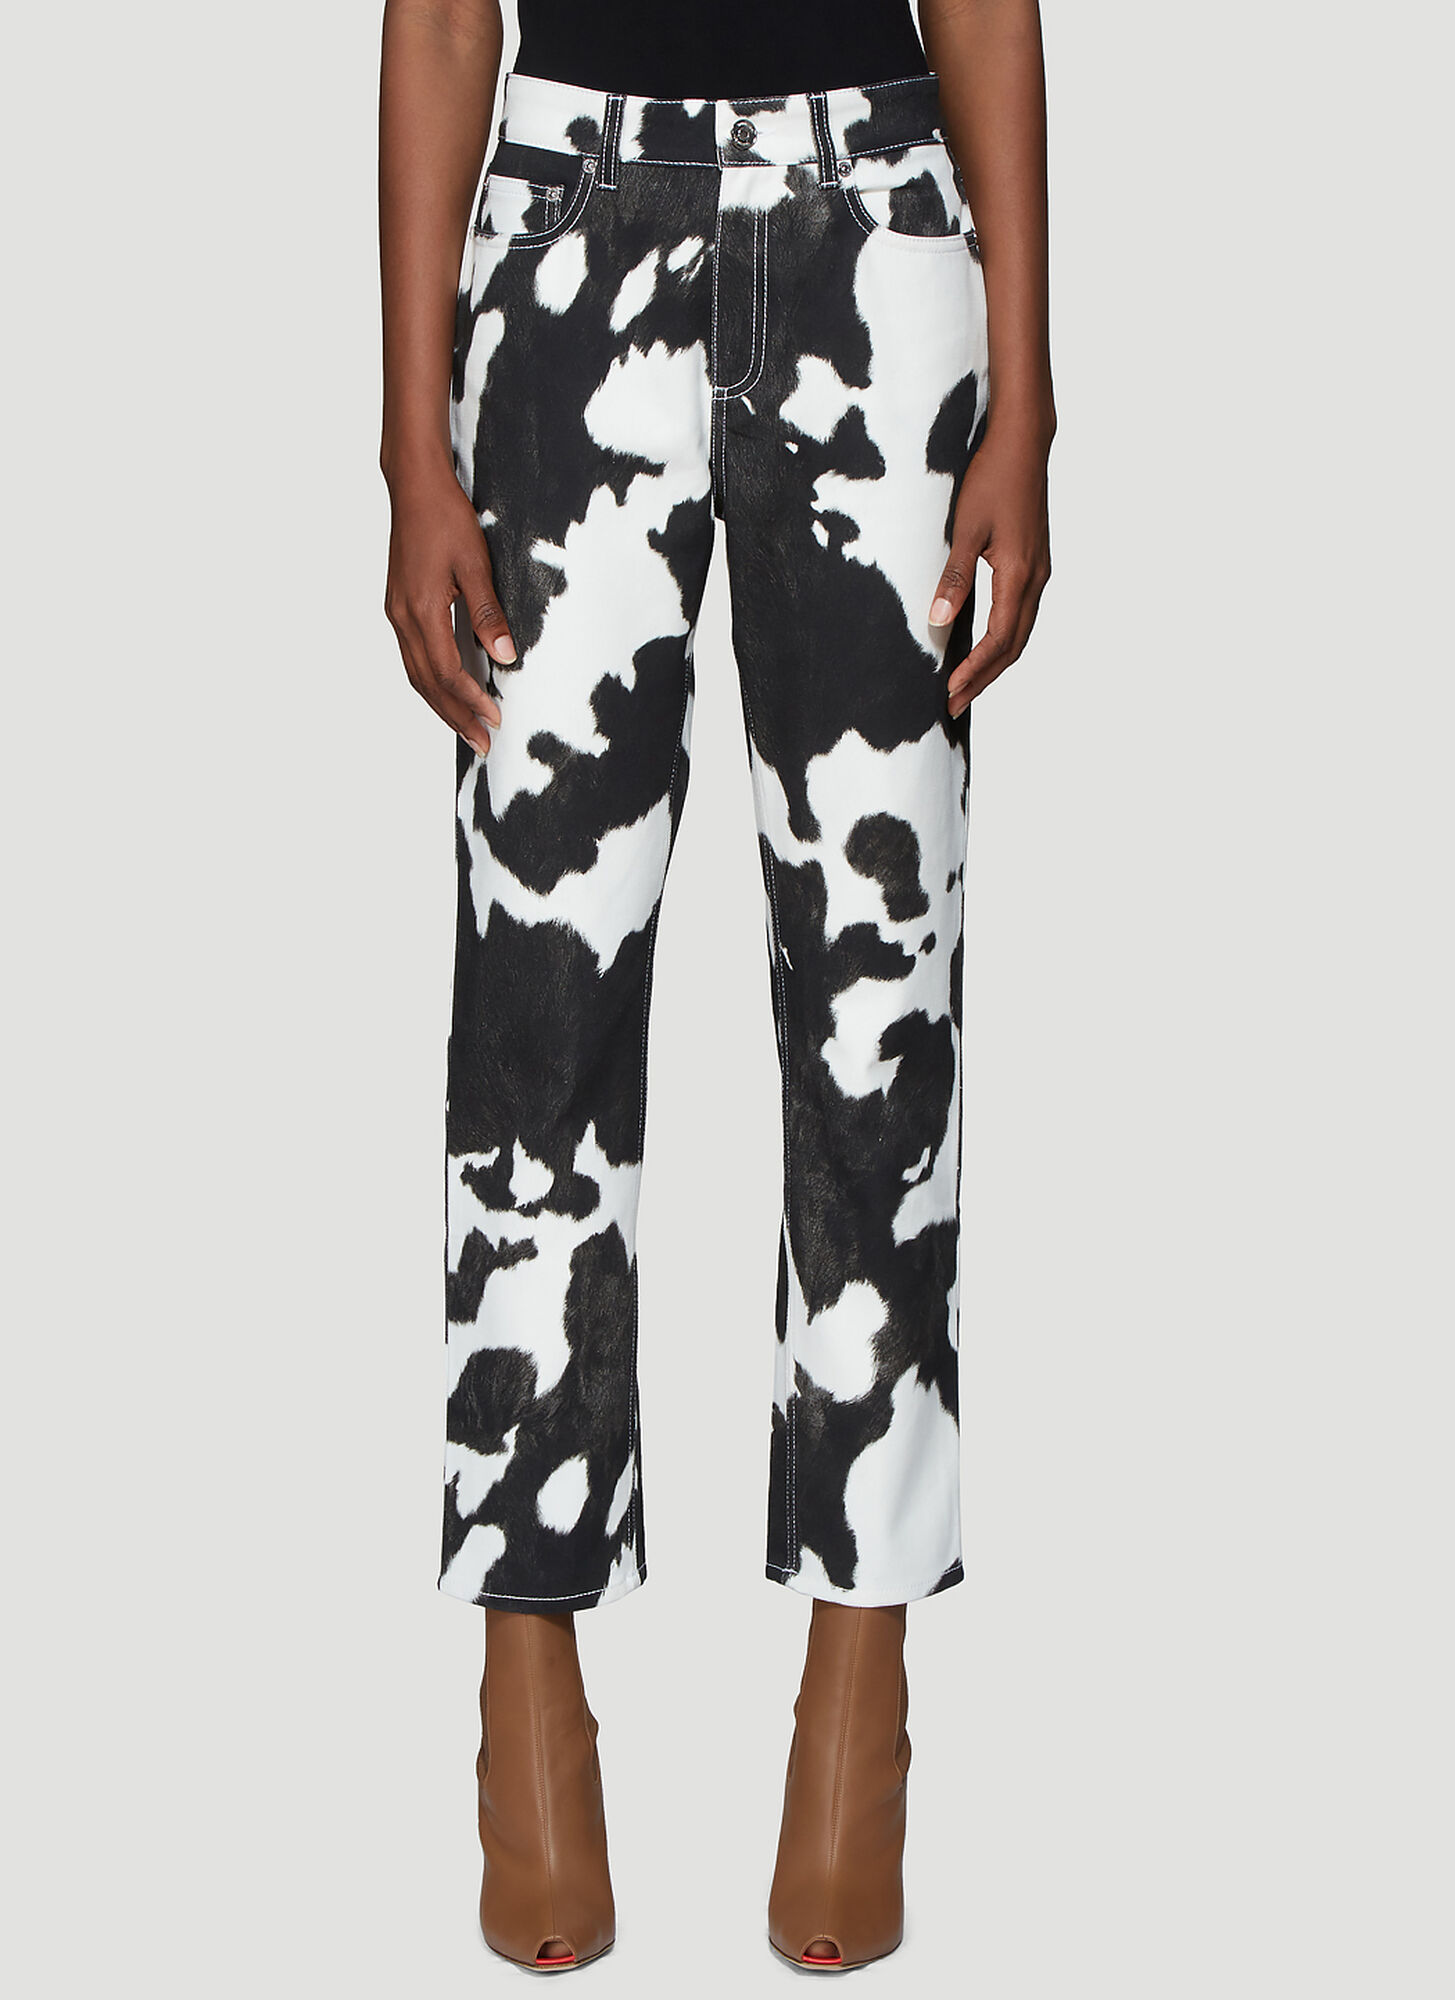 Burberry Cow Print Straight Leg Jeans in Black